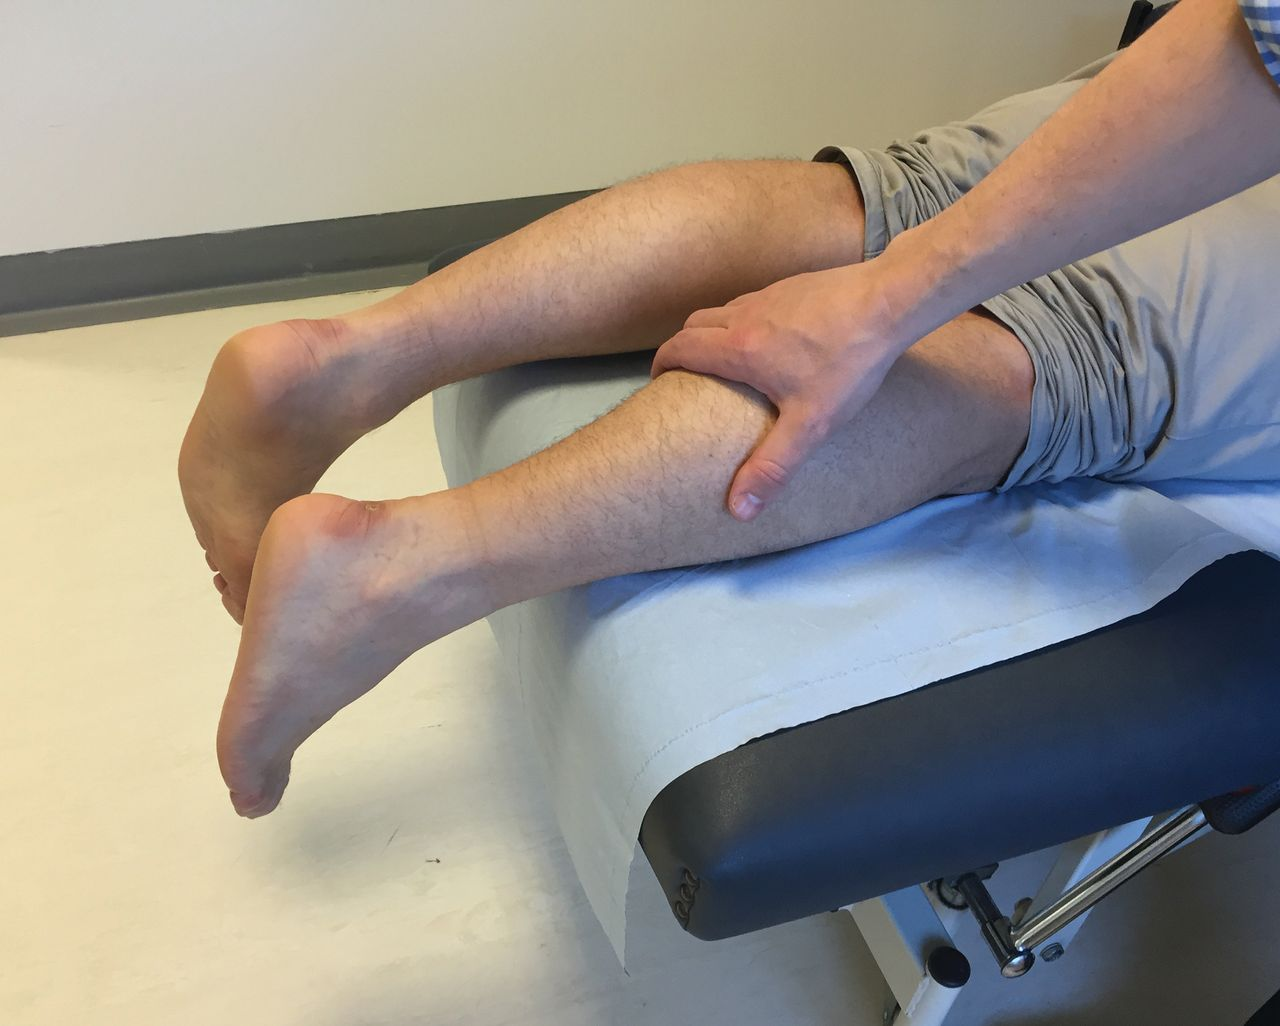 Achilles tendon rupture: how to avoid